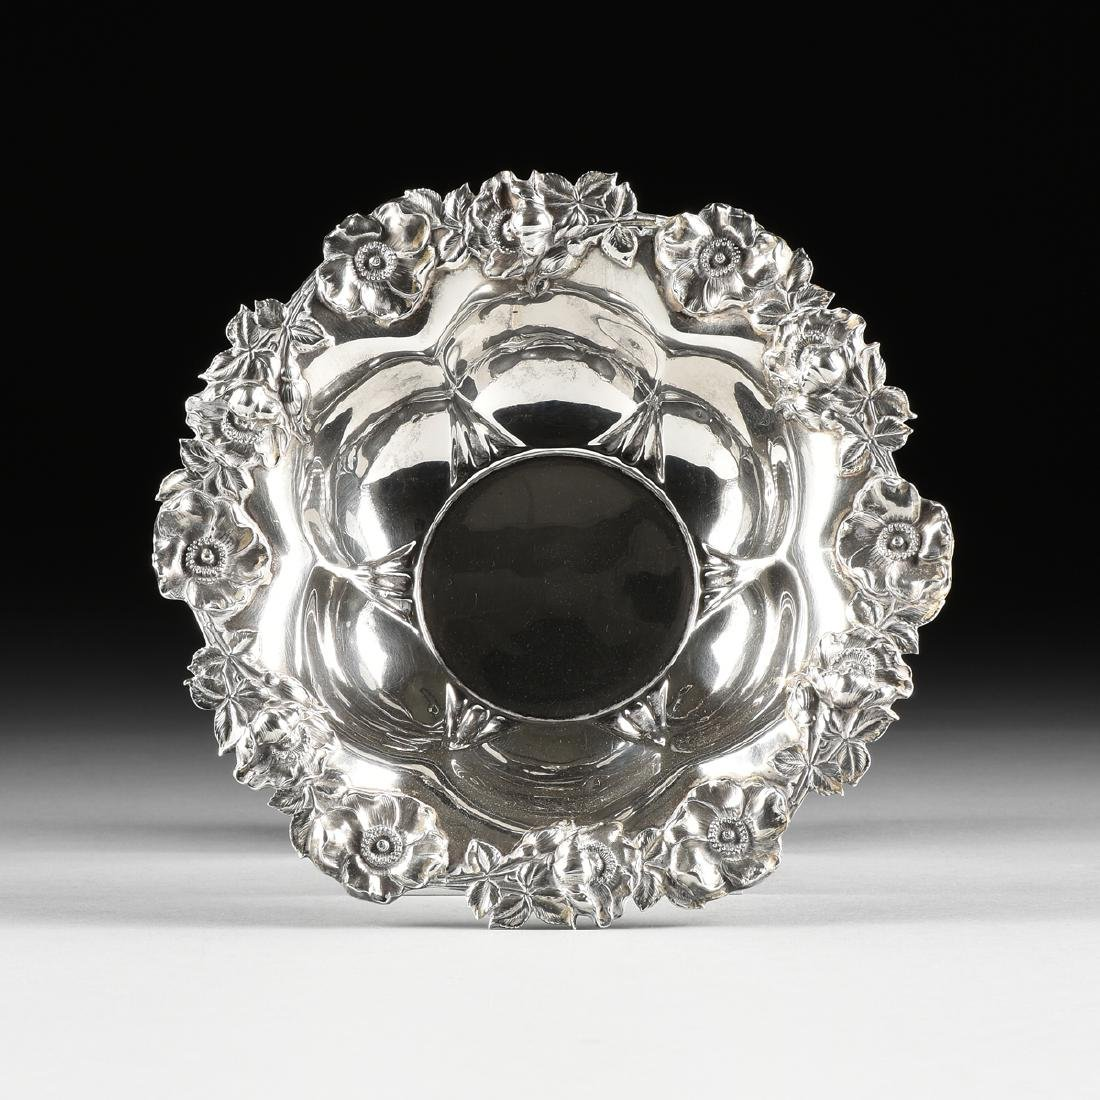 AN UNGER BROTHERS ART NOUVEAU STERLING SILVER BOWL,